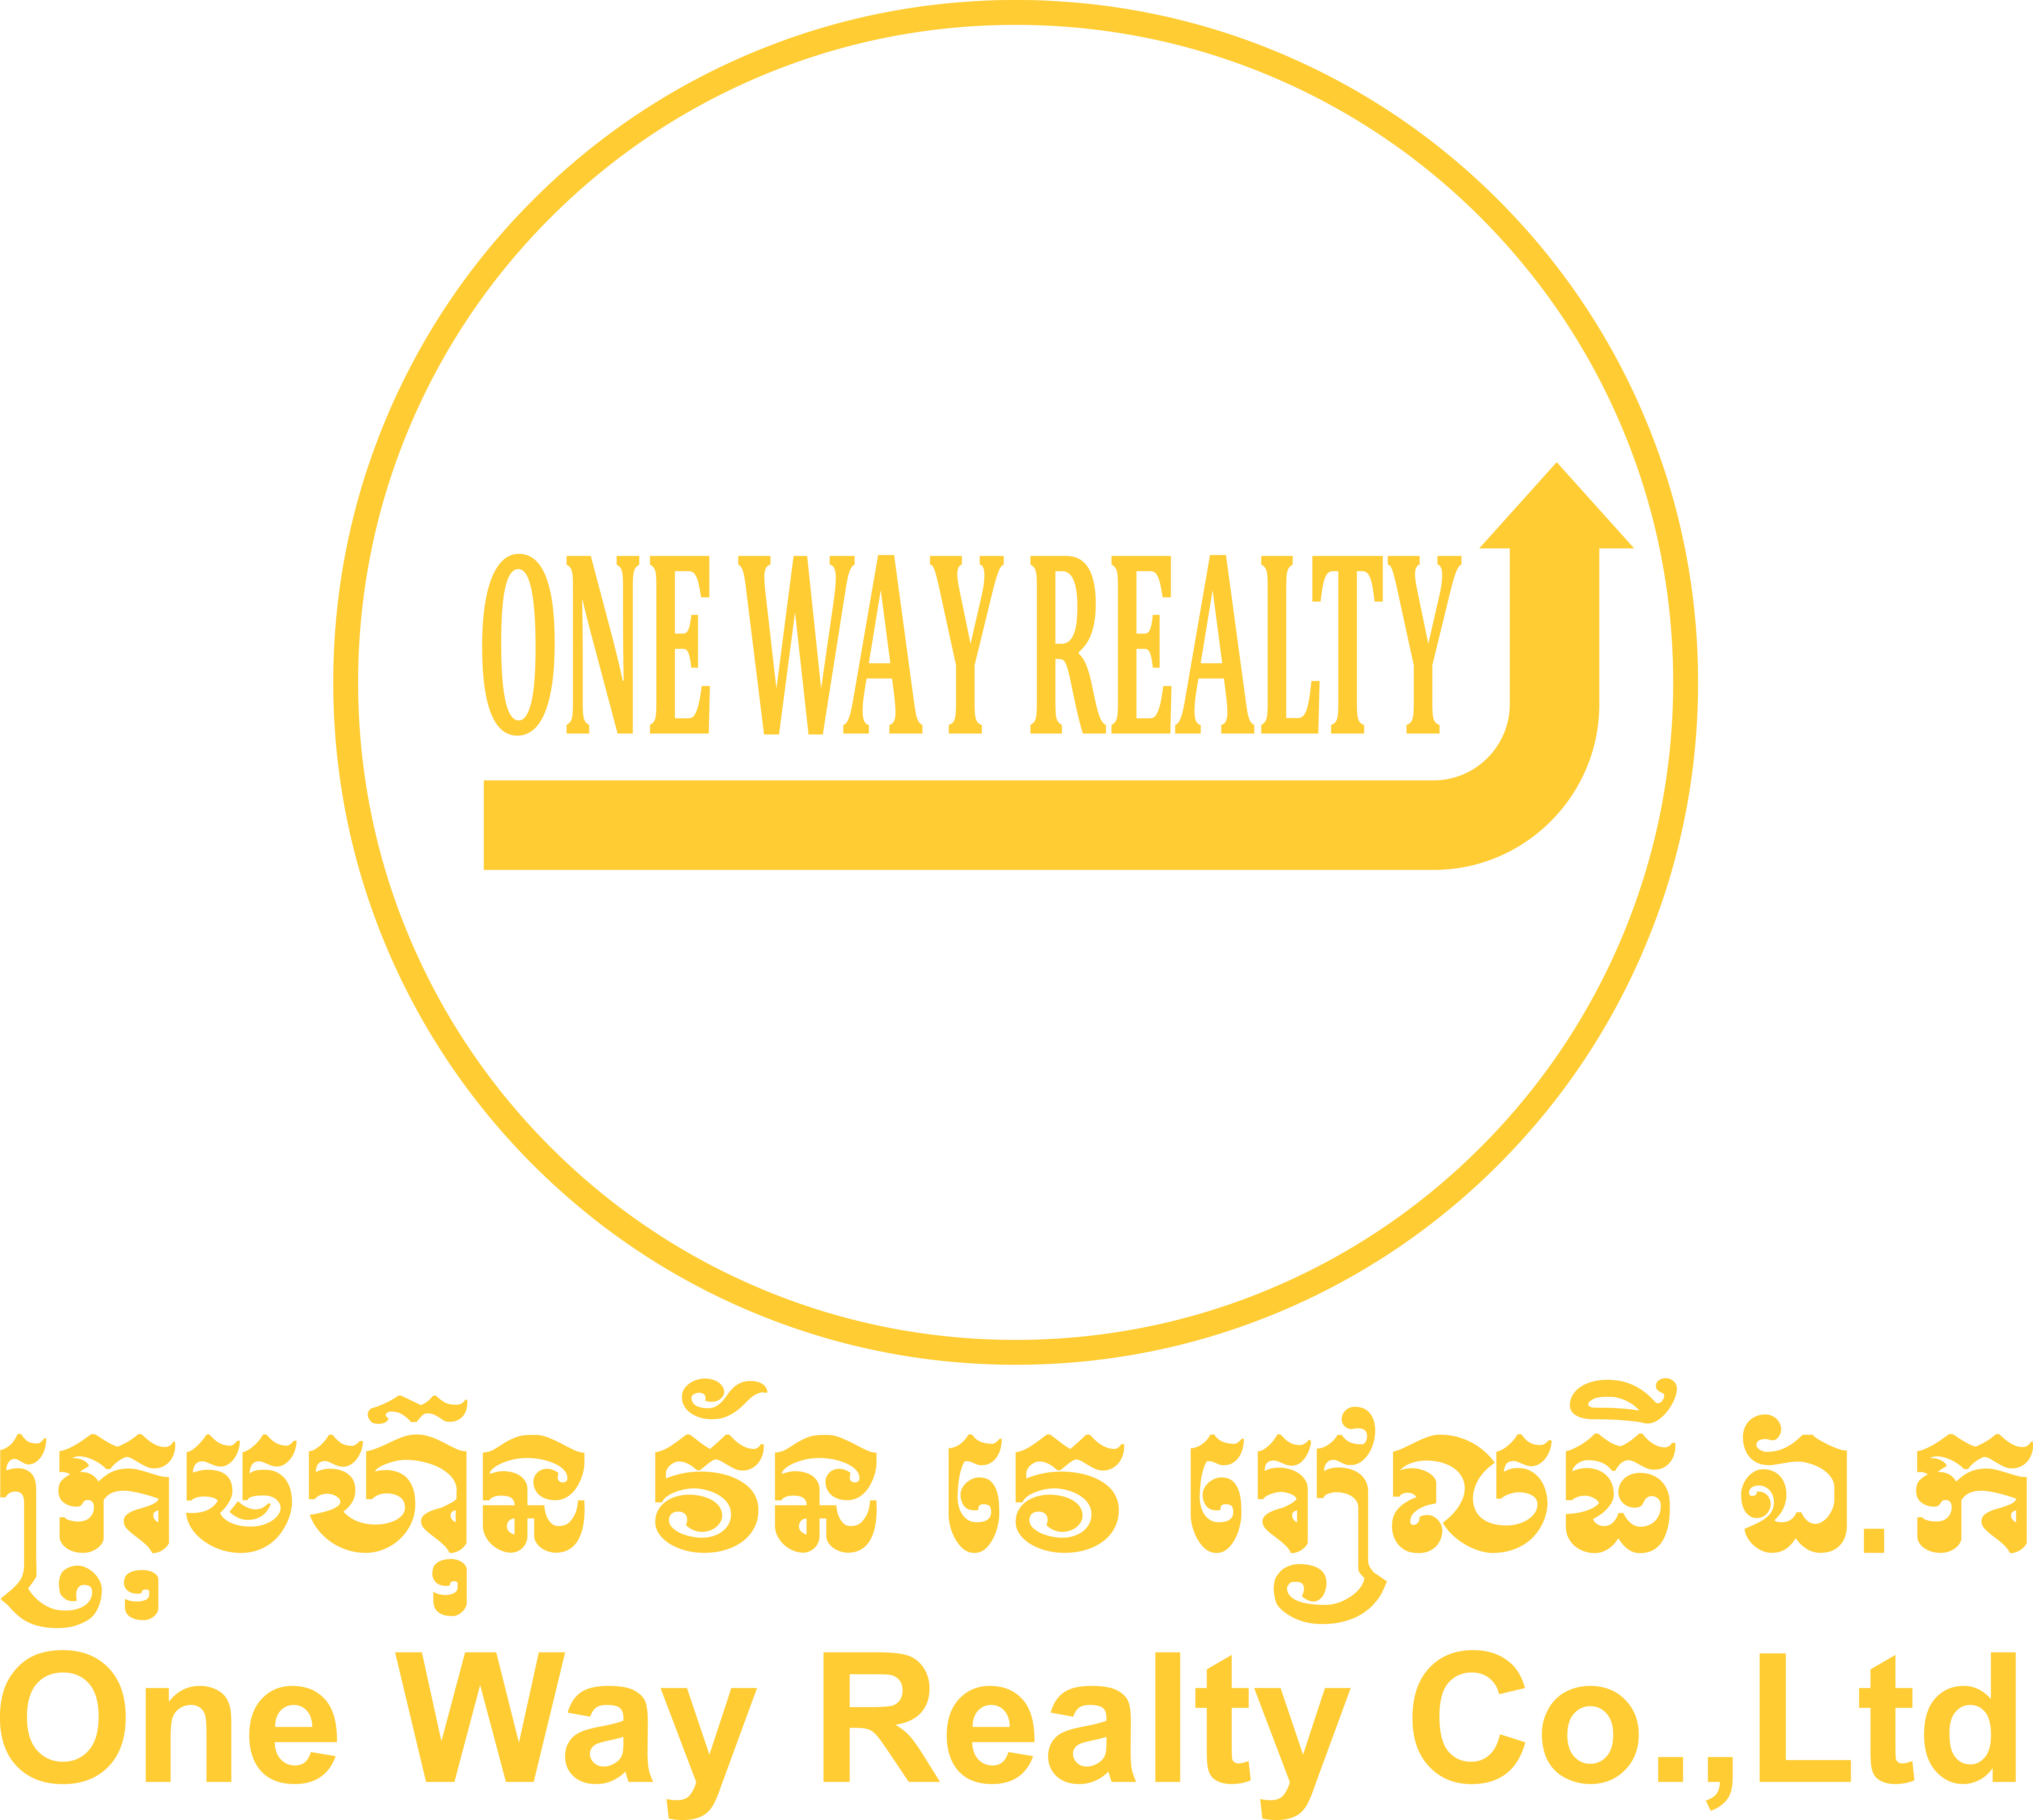 One Way Realty